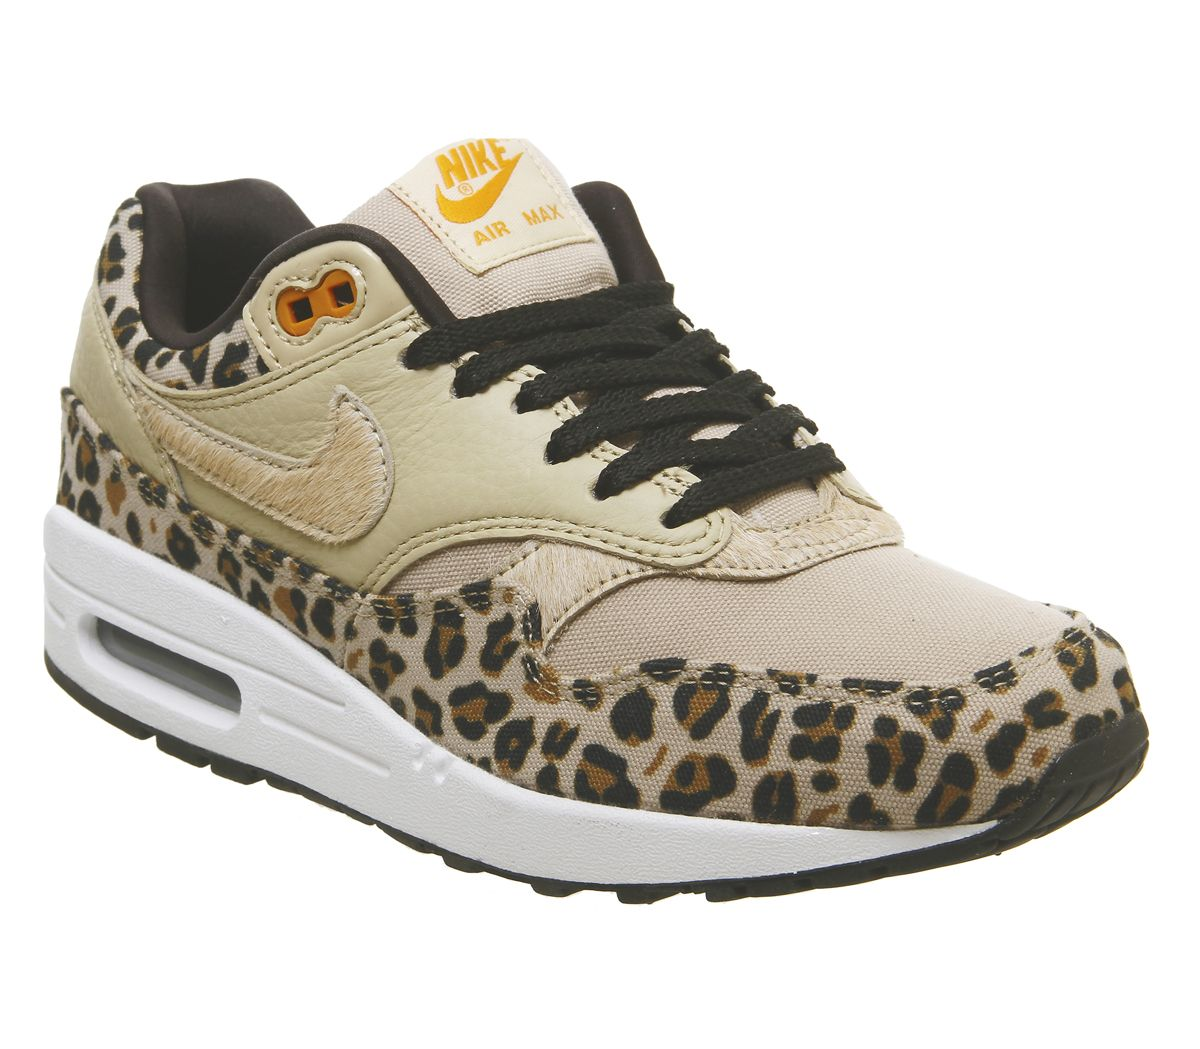 online store 6d328 820c1 Nike Air Max 1 Trainers Desert Ore Wheat Leopard - Unisex Sports